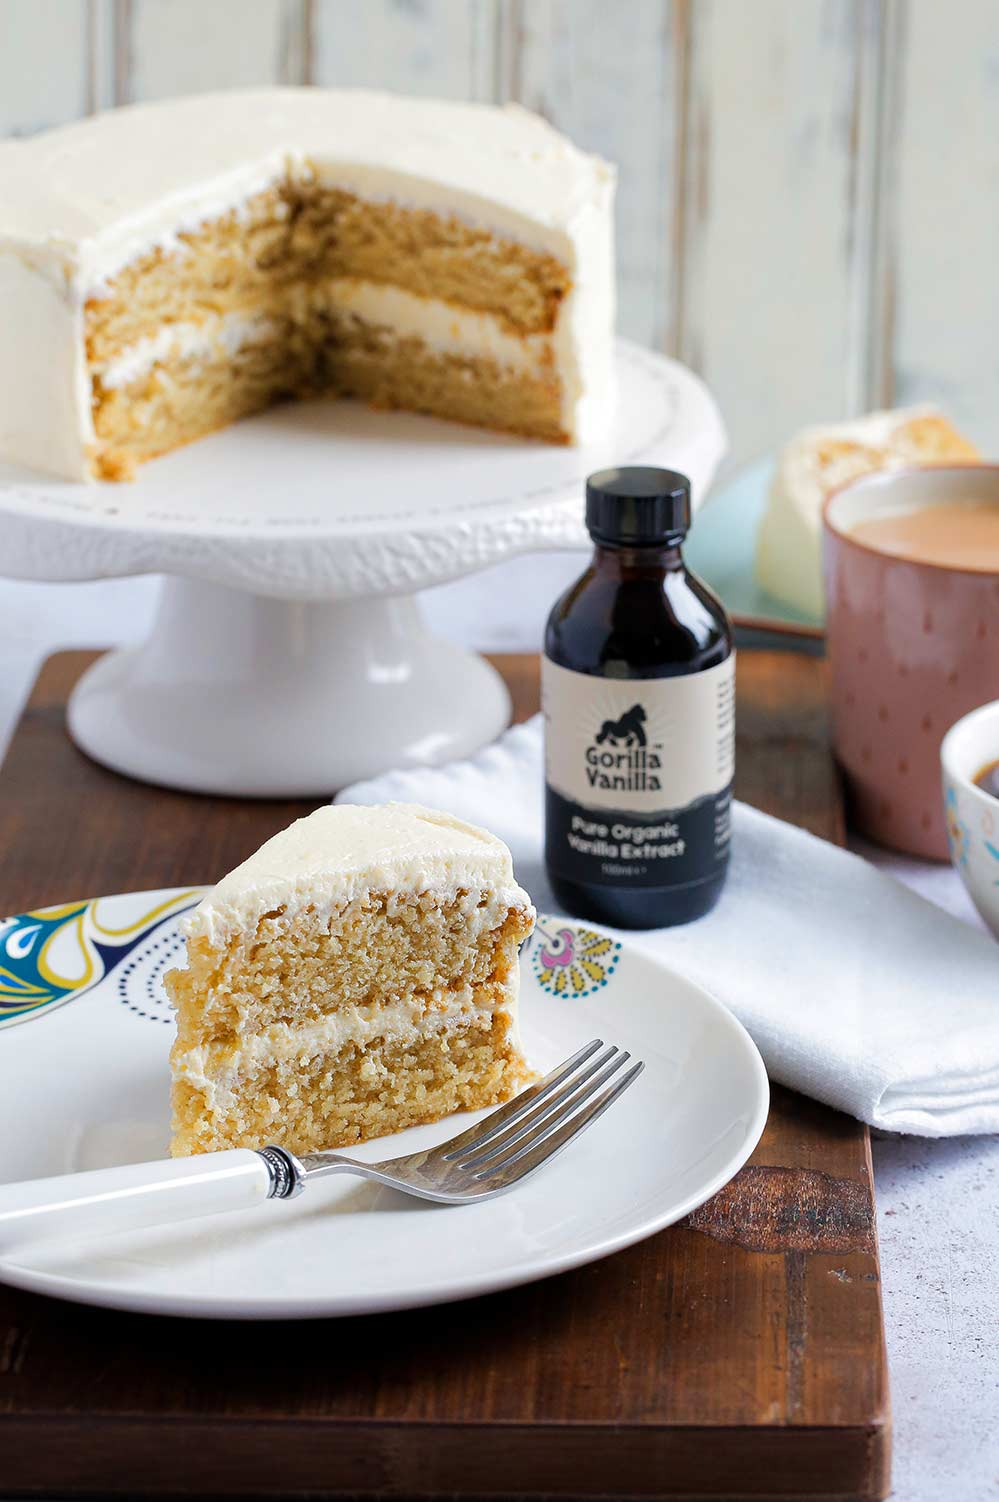 Vanilla Extract Cake Baking